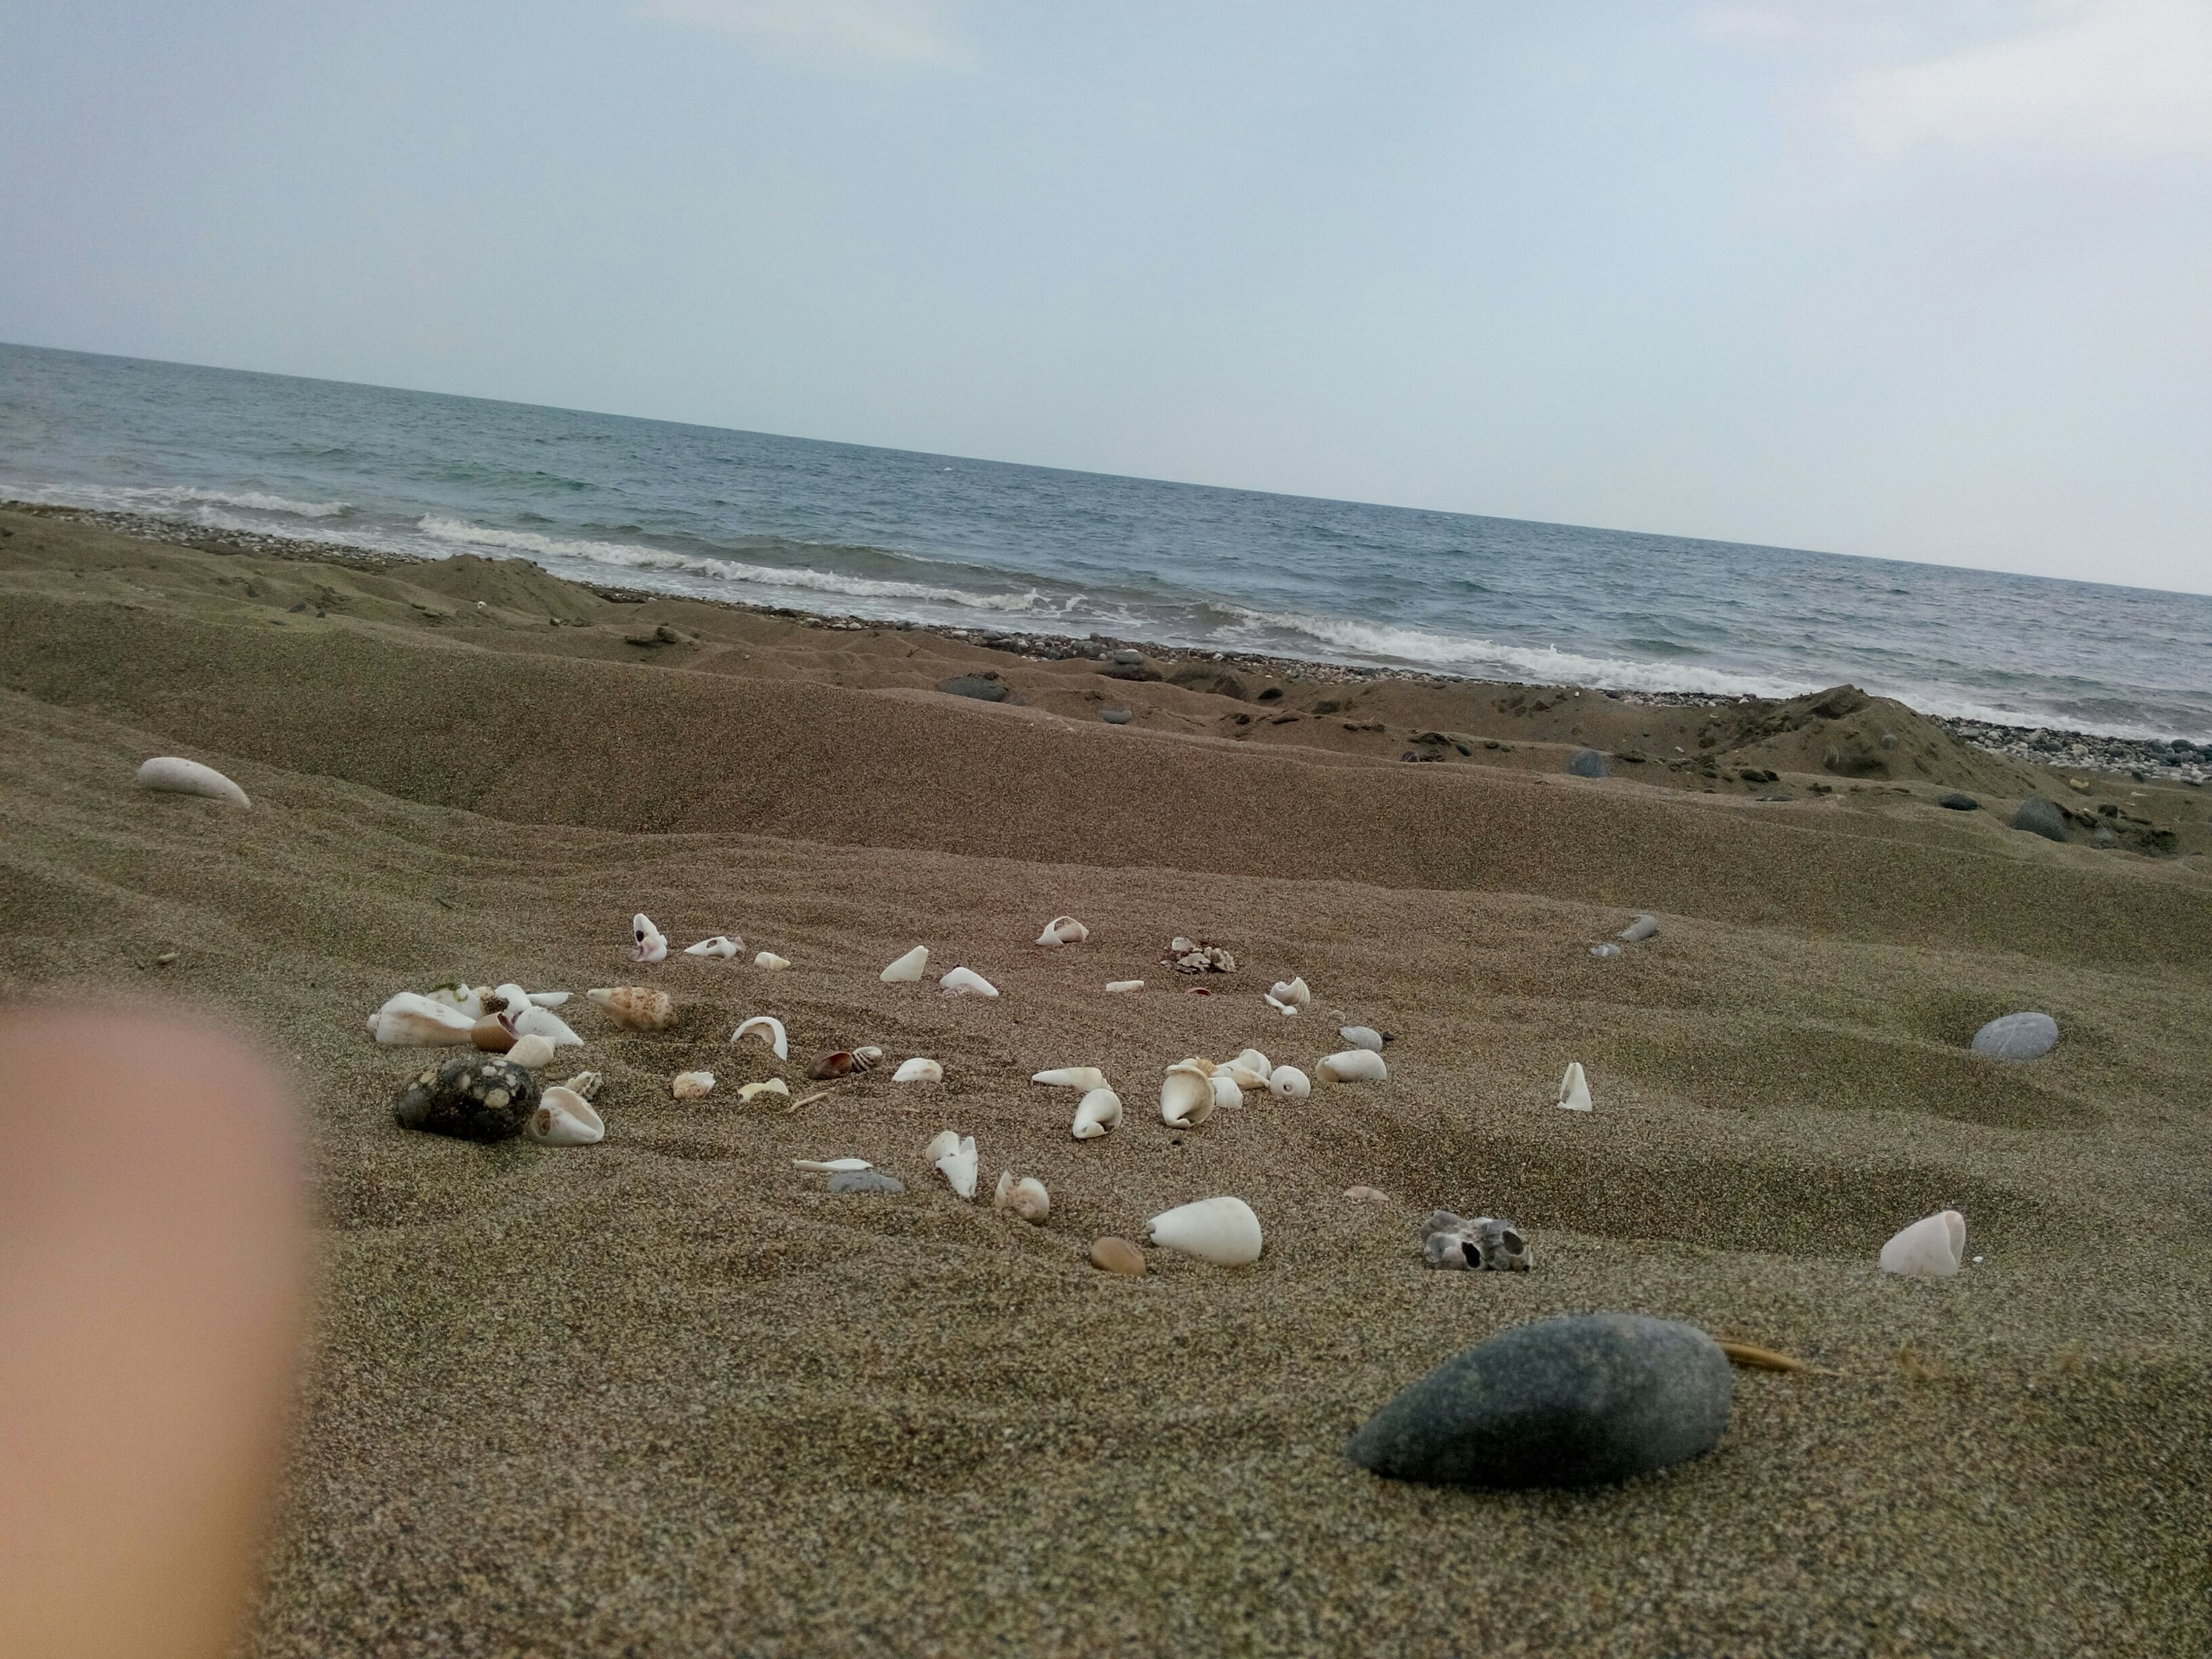 beach, sea, sand, horizon over water, shore, water, sky, tranquility, tranquil scene, scenics, nature, beauty in nature, coastline, pebble, day, stone - object, outdoors, idyllic, vacations, remote